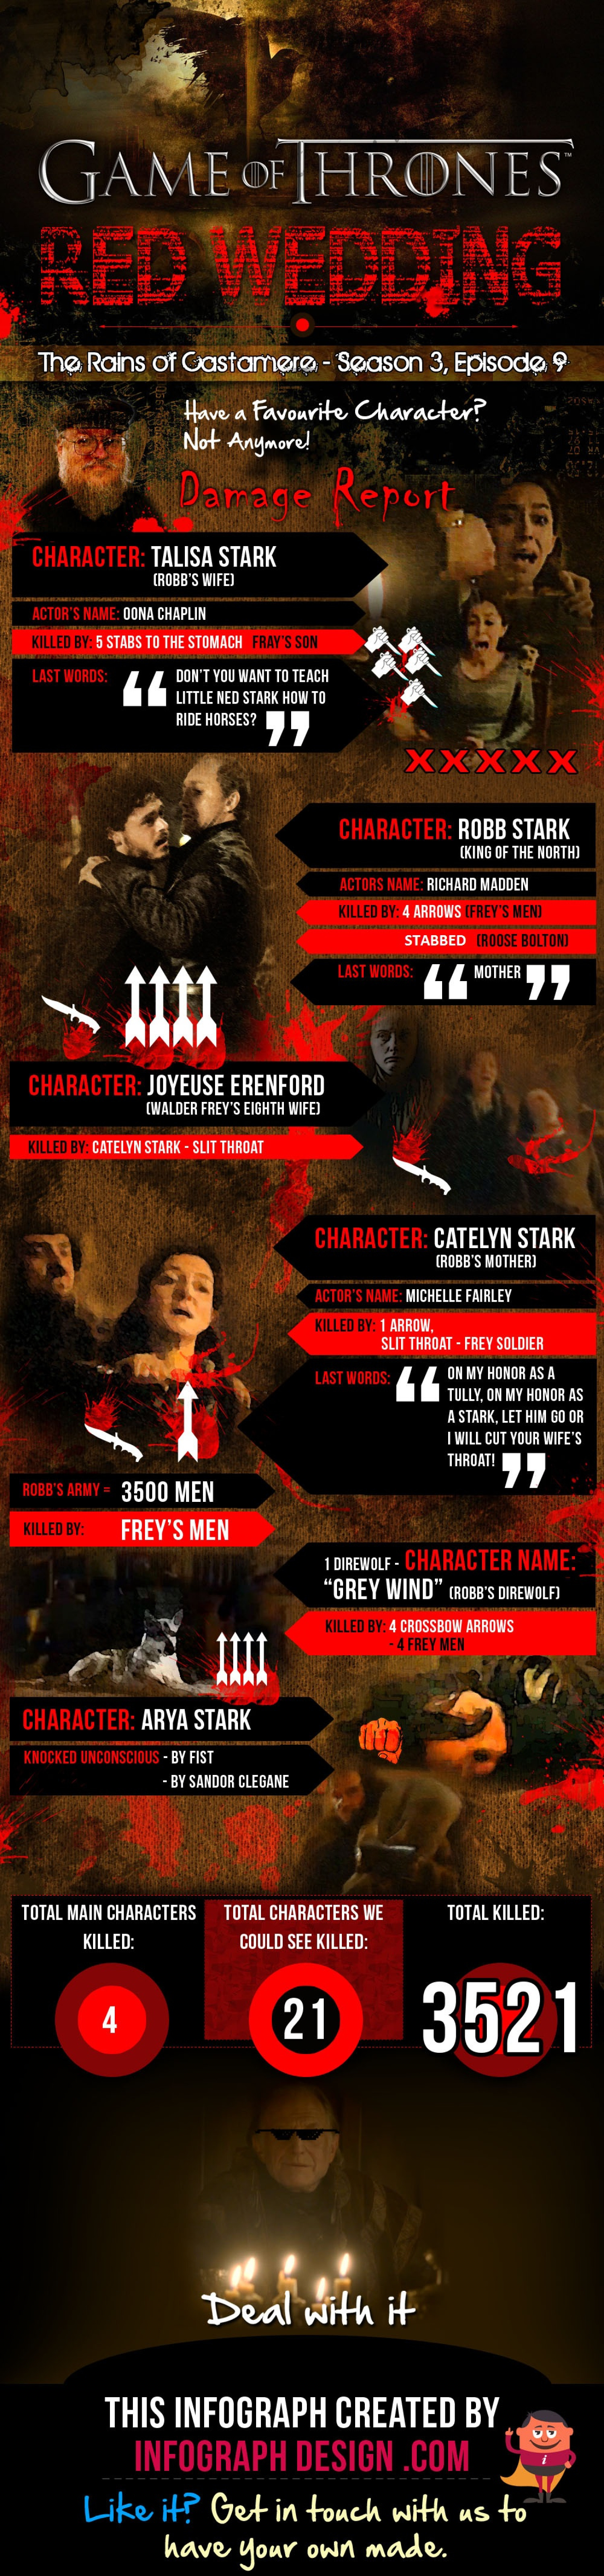 Game Of Thrones Red Wedding Infographic